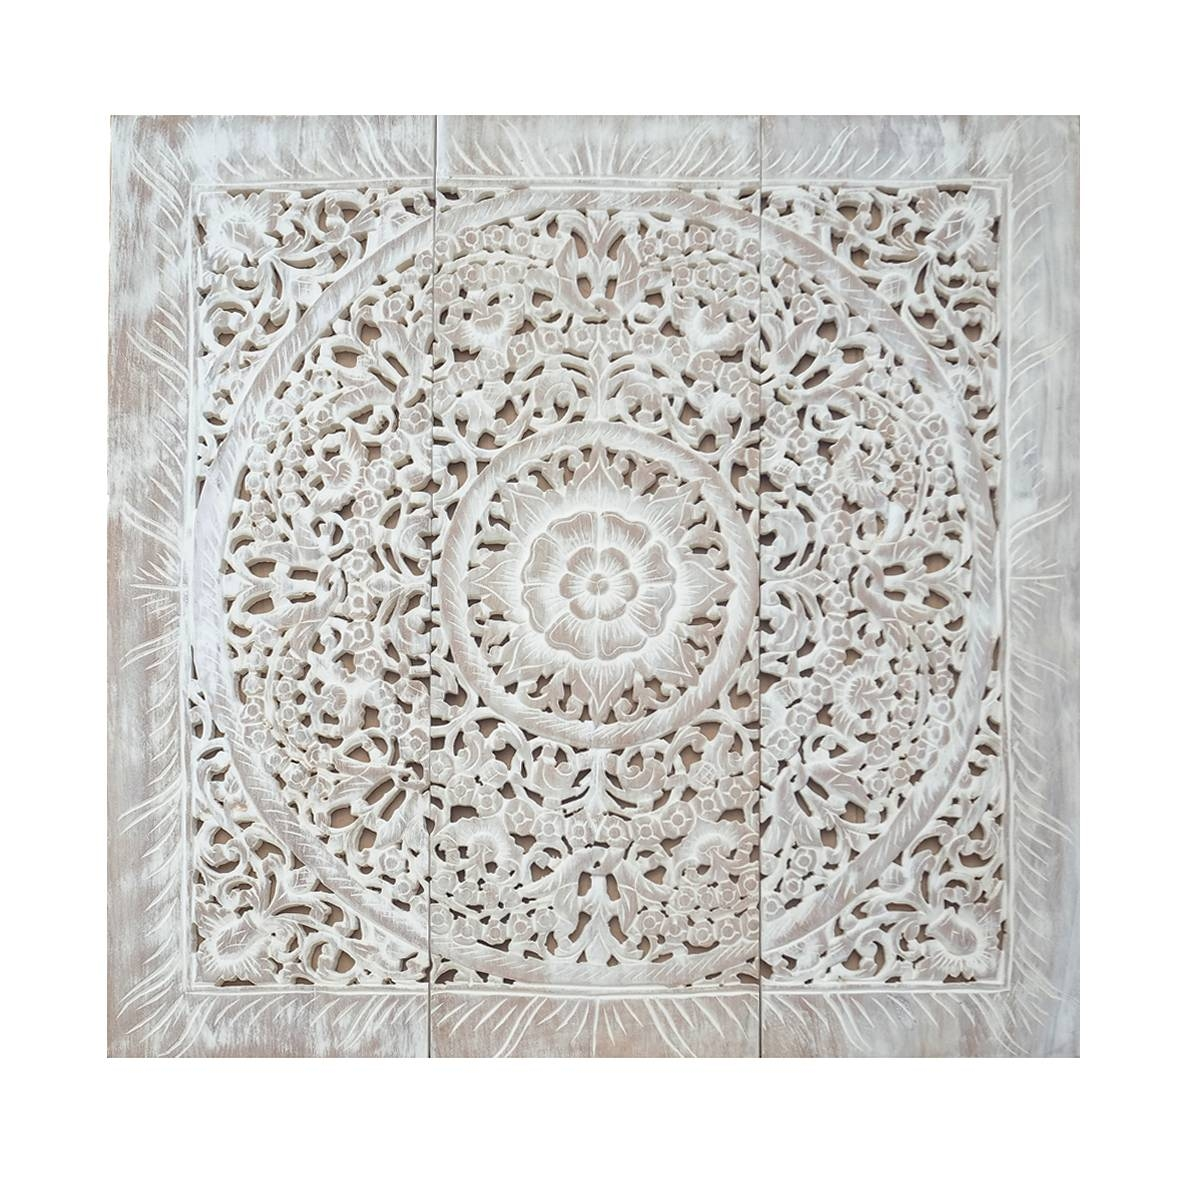 Carved Wood Panel Wall Art – Wall Murals Ideas With Regard To Most Popular Wood Panel Wall Art (View 4 of 20)